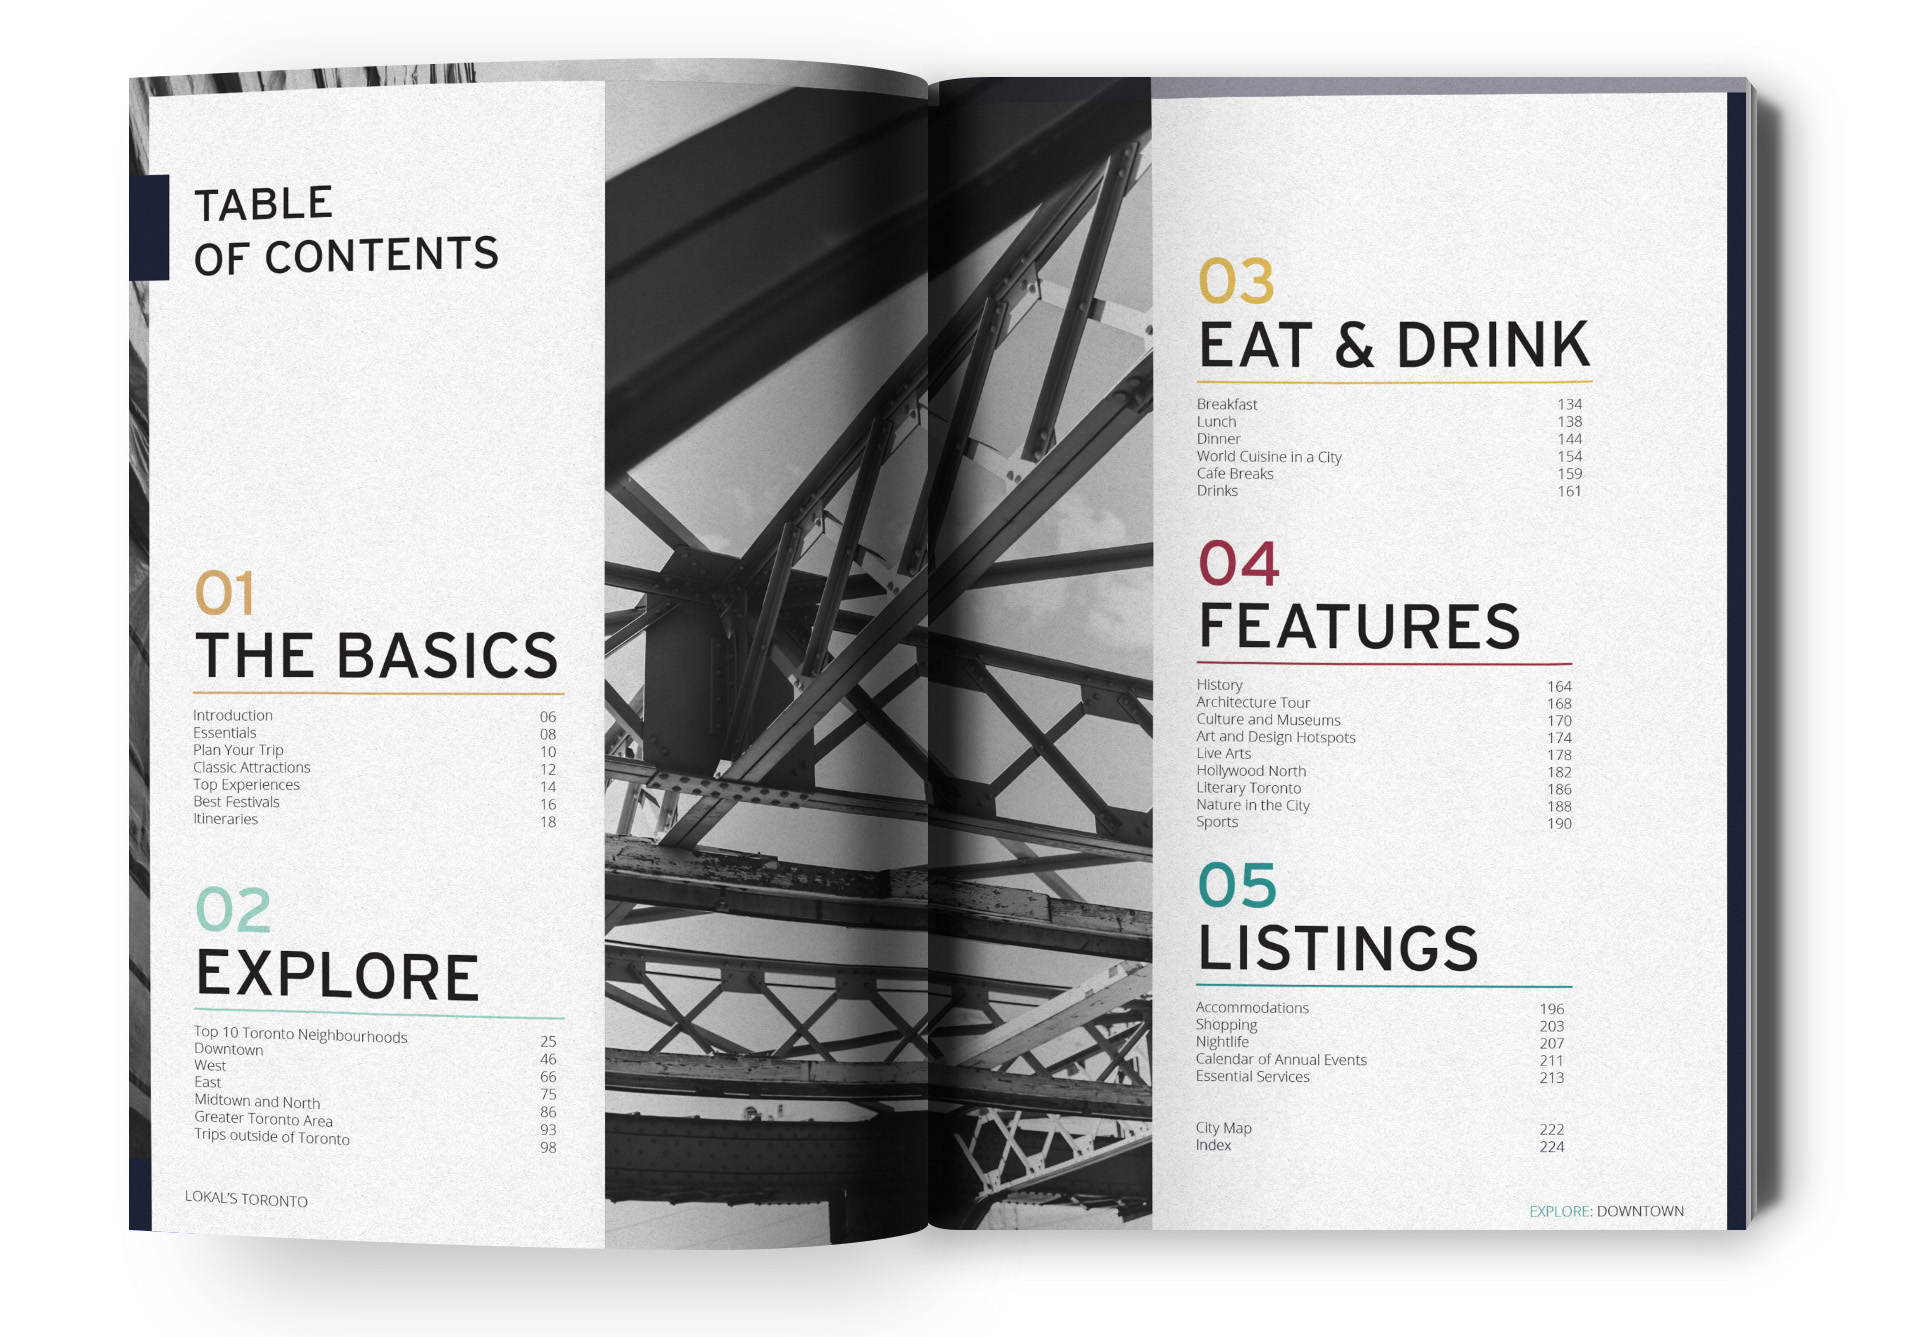 5 – Table of Contents